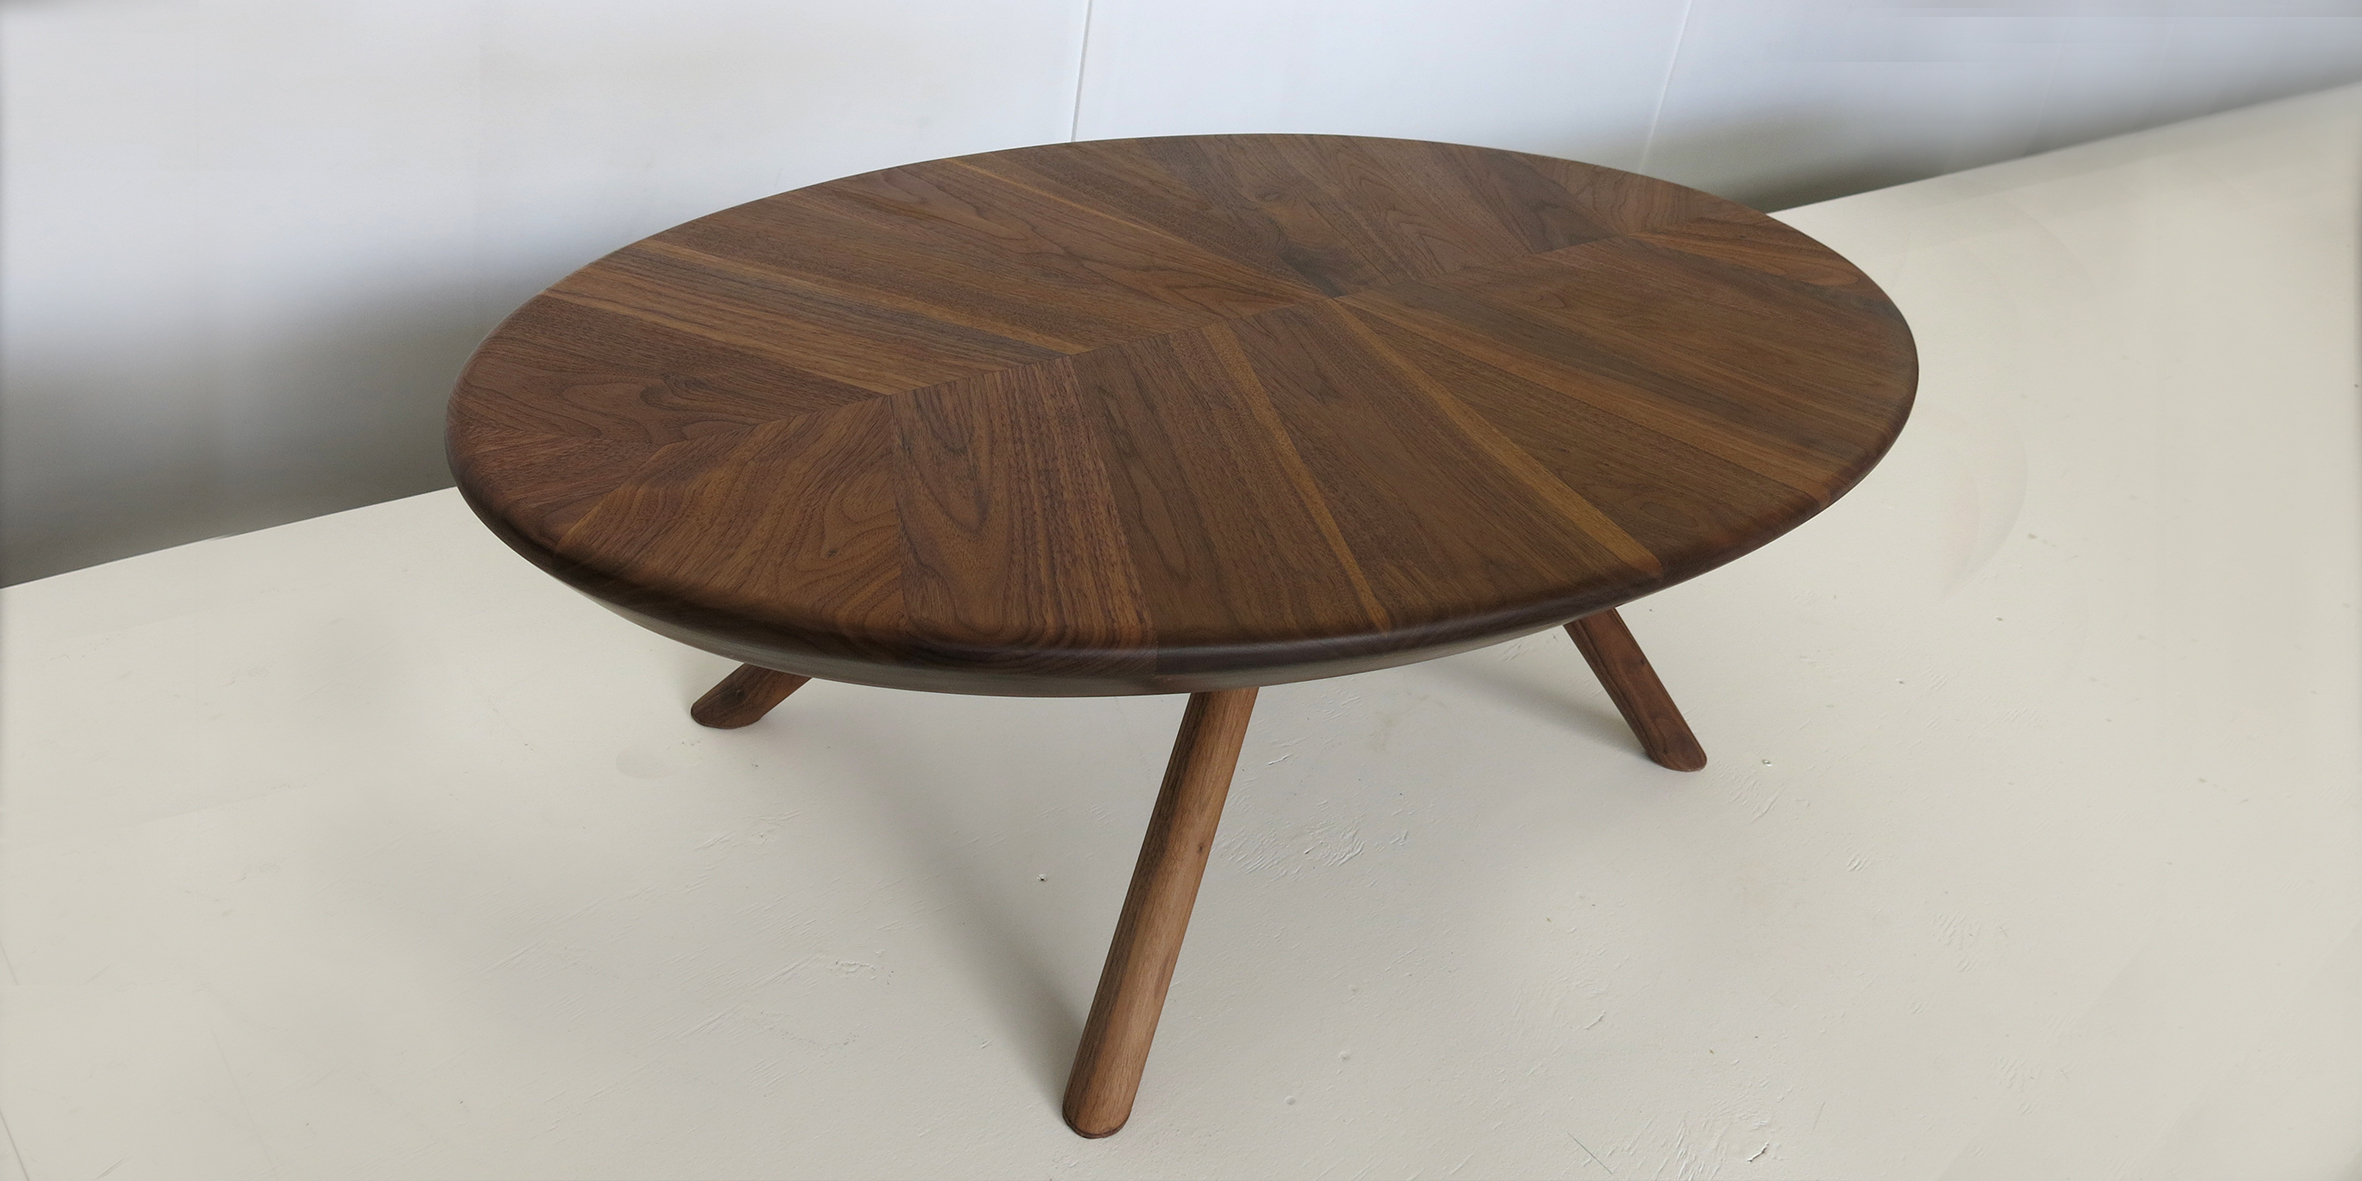 ovate table, 1400 l x 700 w x 400 h, jarrah